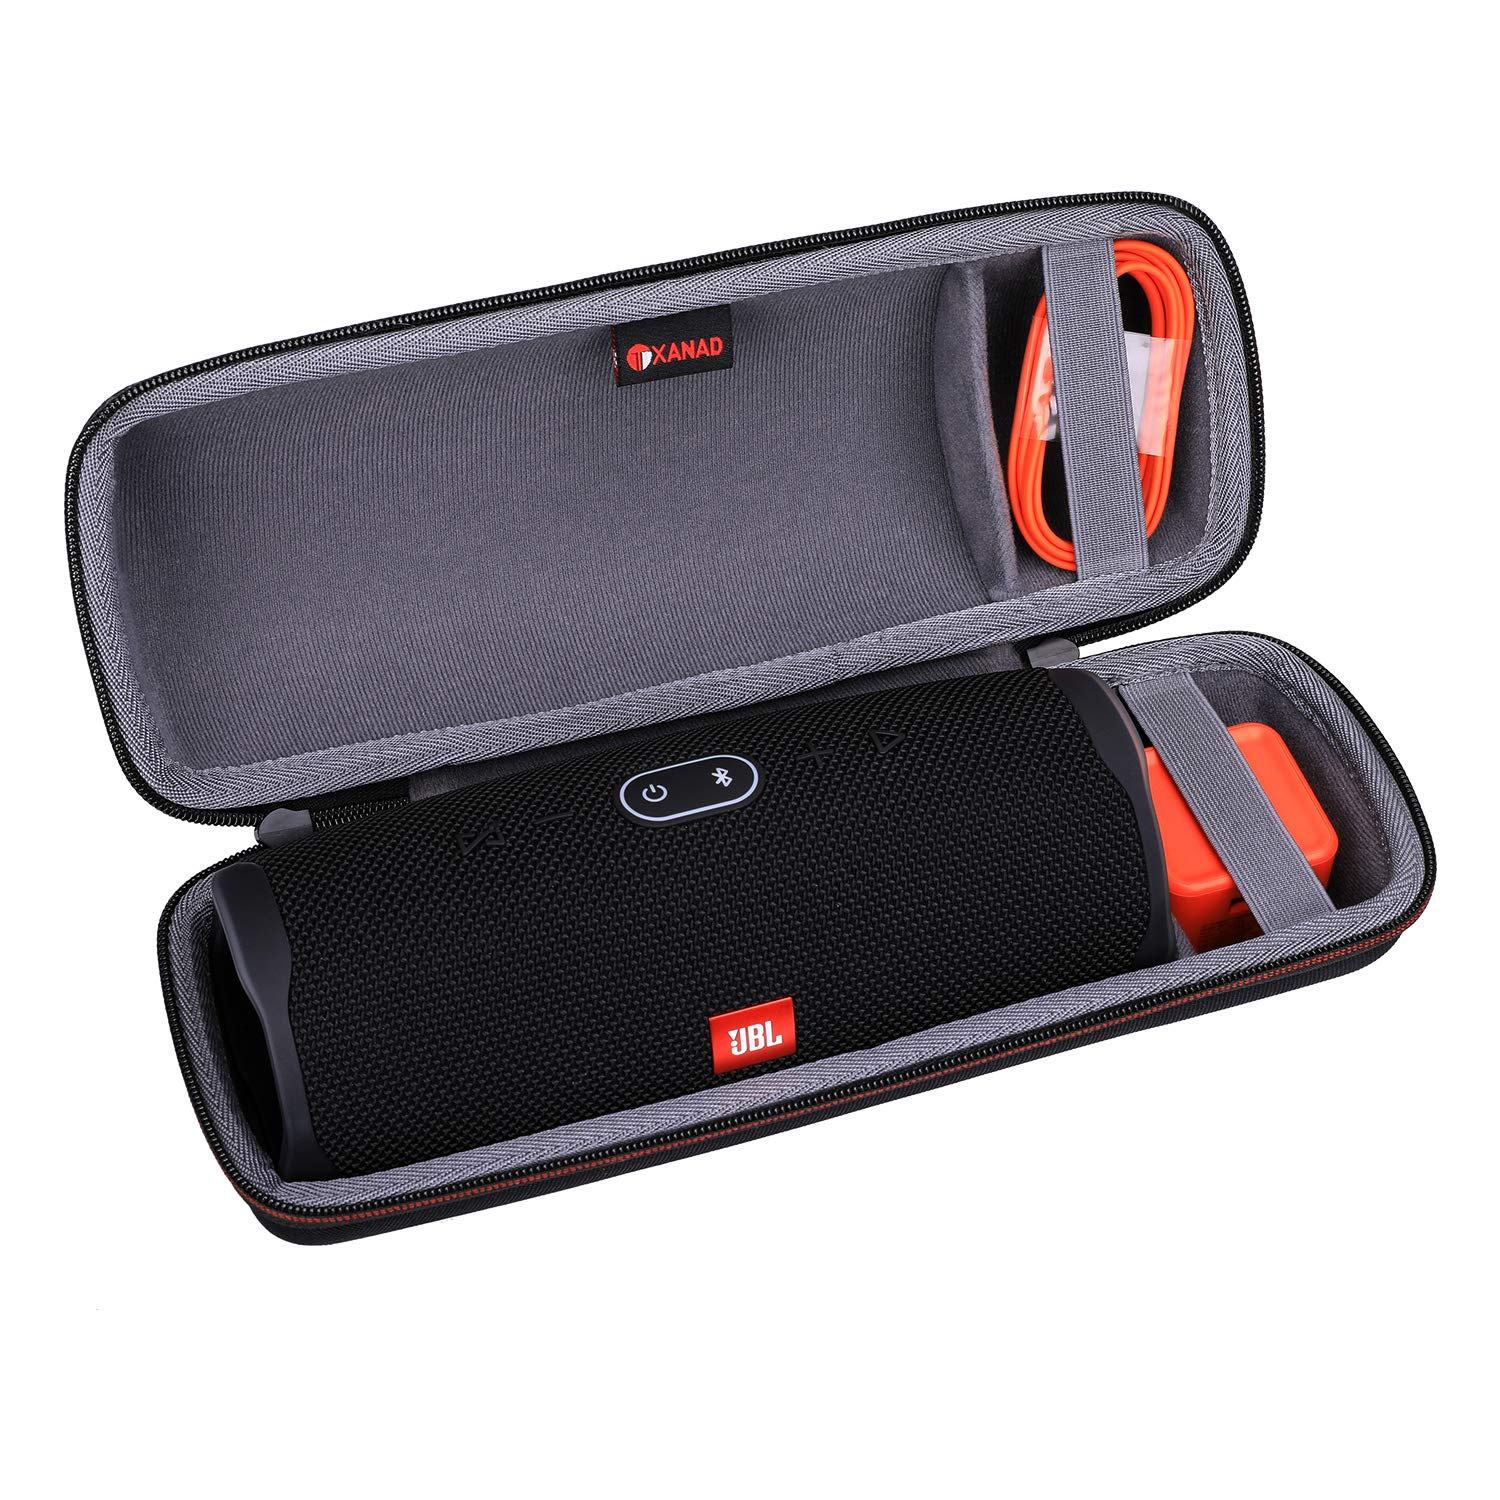 XANAD Hard Case for JBL Charge 4 Speaker - Storage Protective Travel Carrying Bag